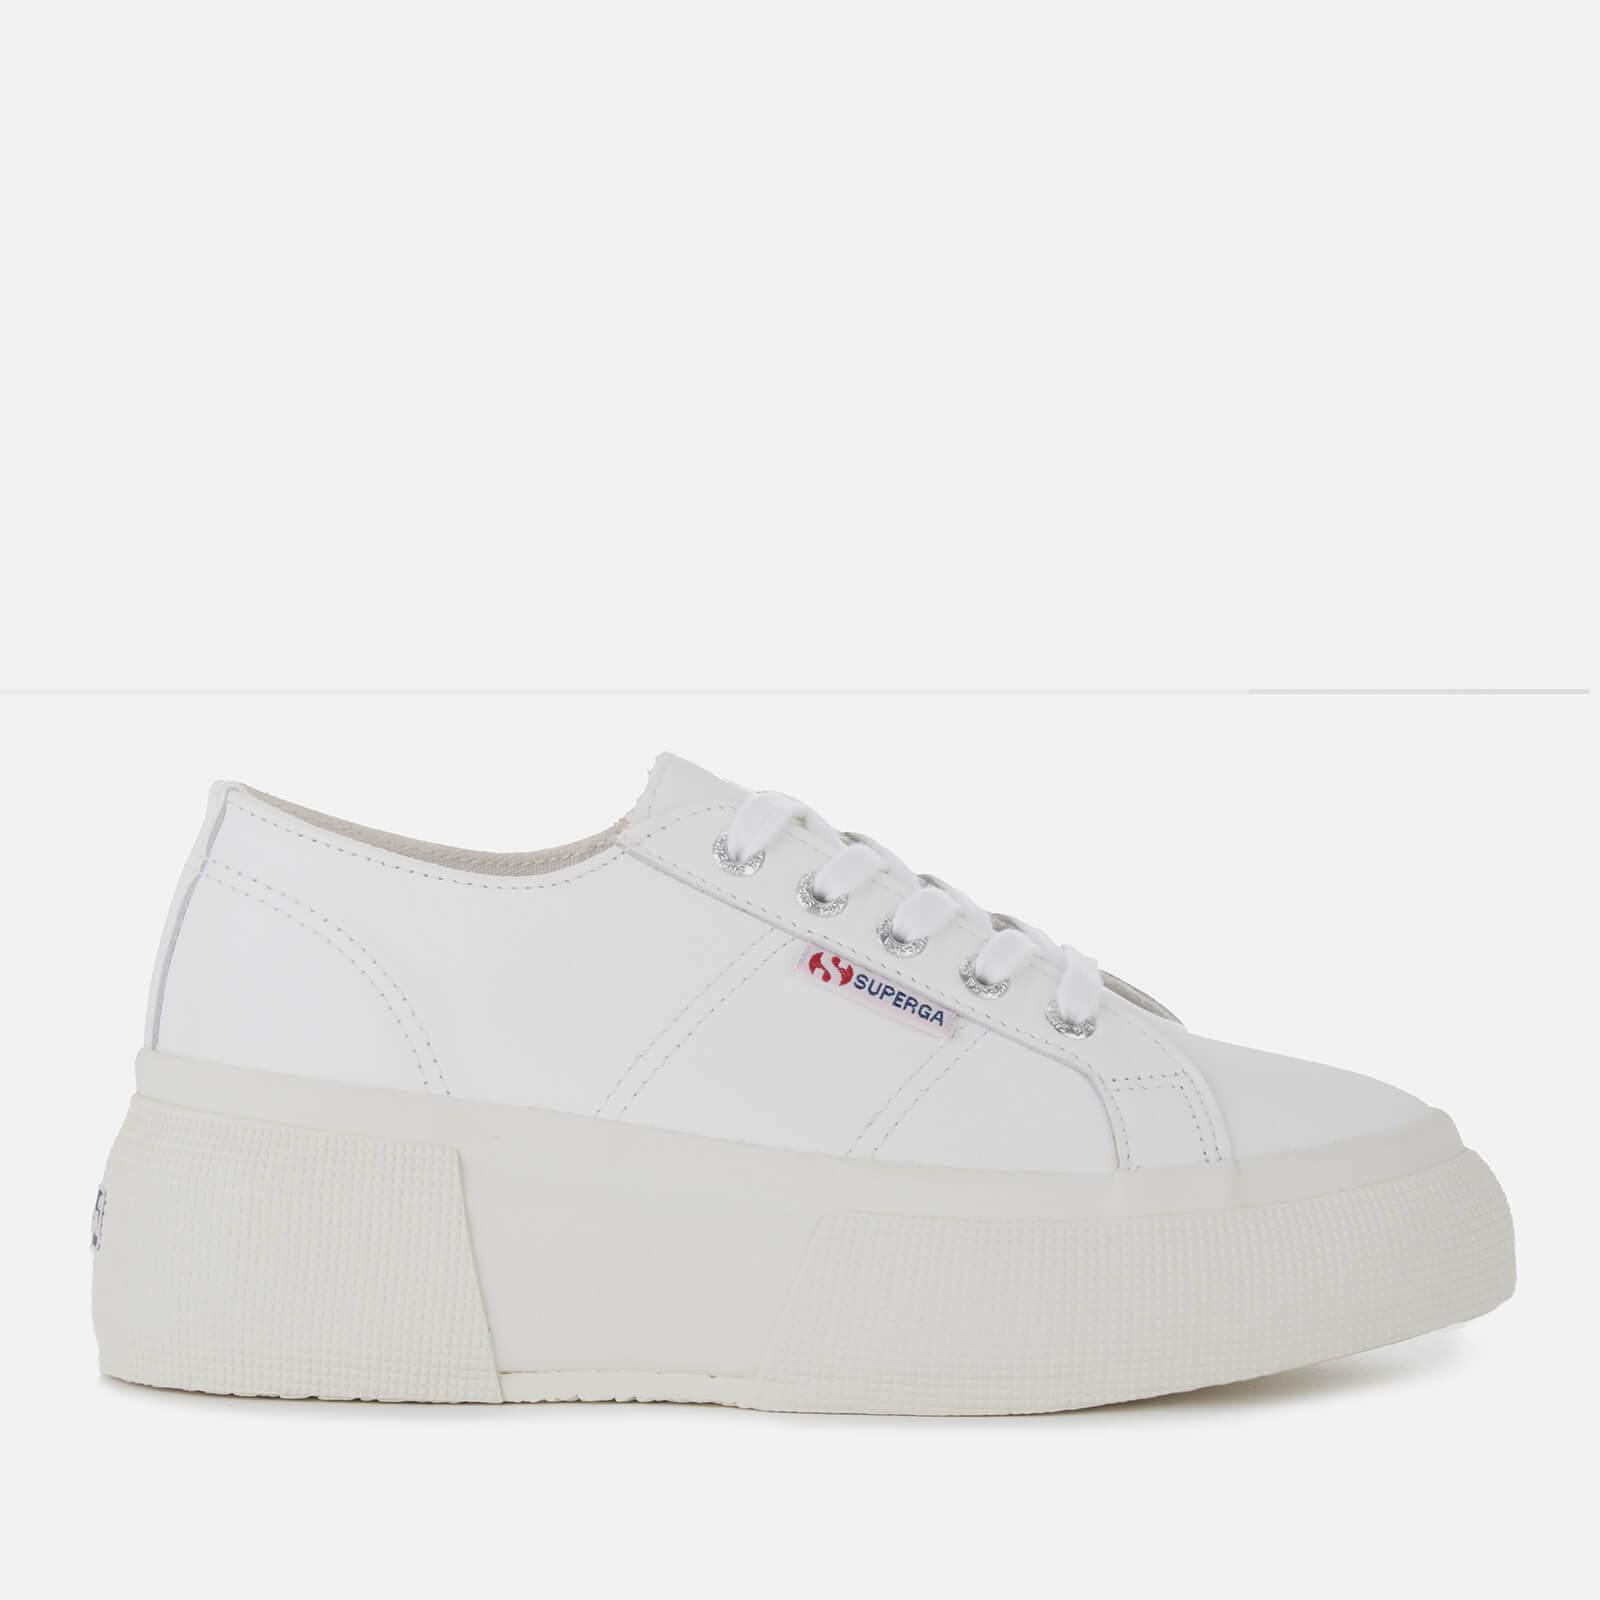 2287 Flatform Lyst Superga Trainers Leanappaw Women's White Leather In ZxF1PF